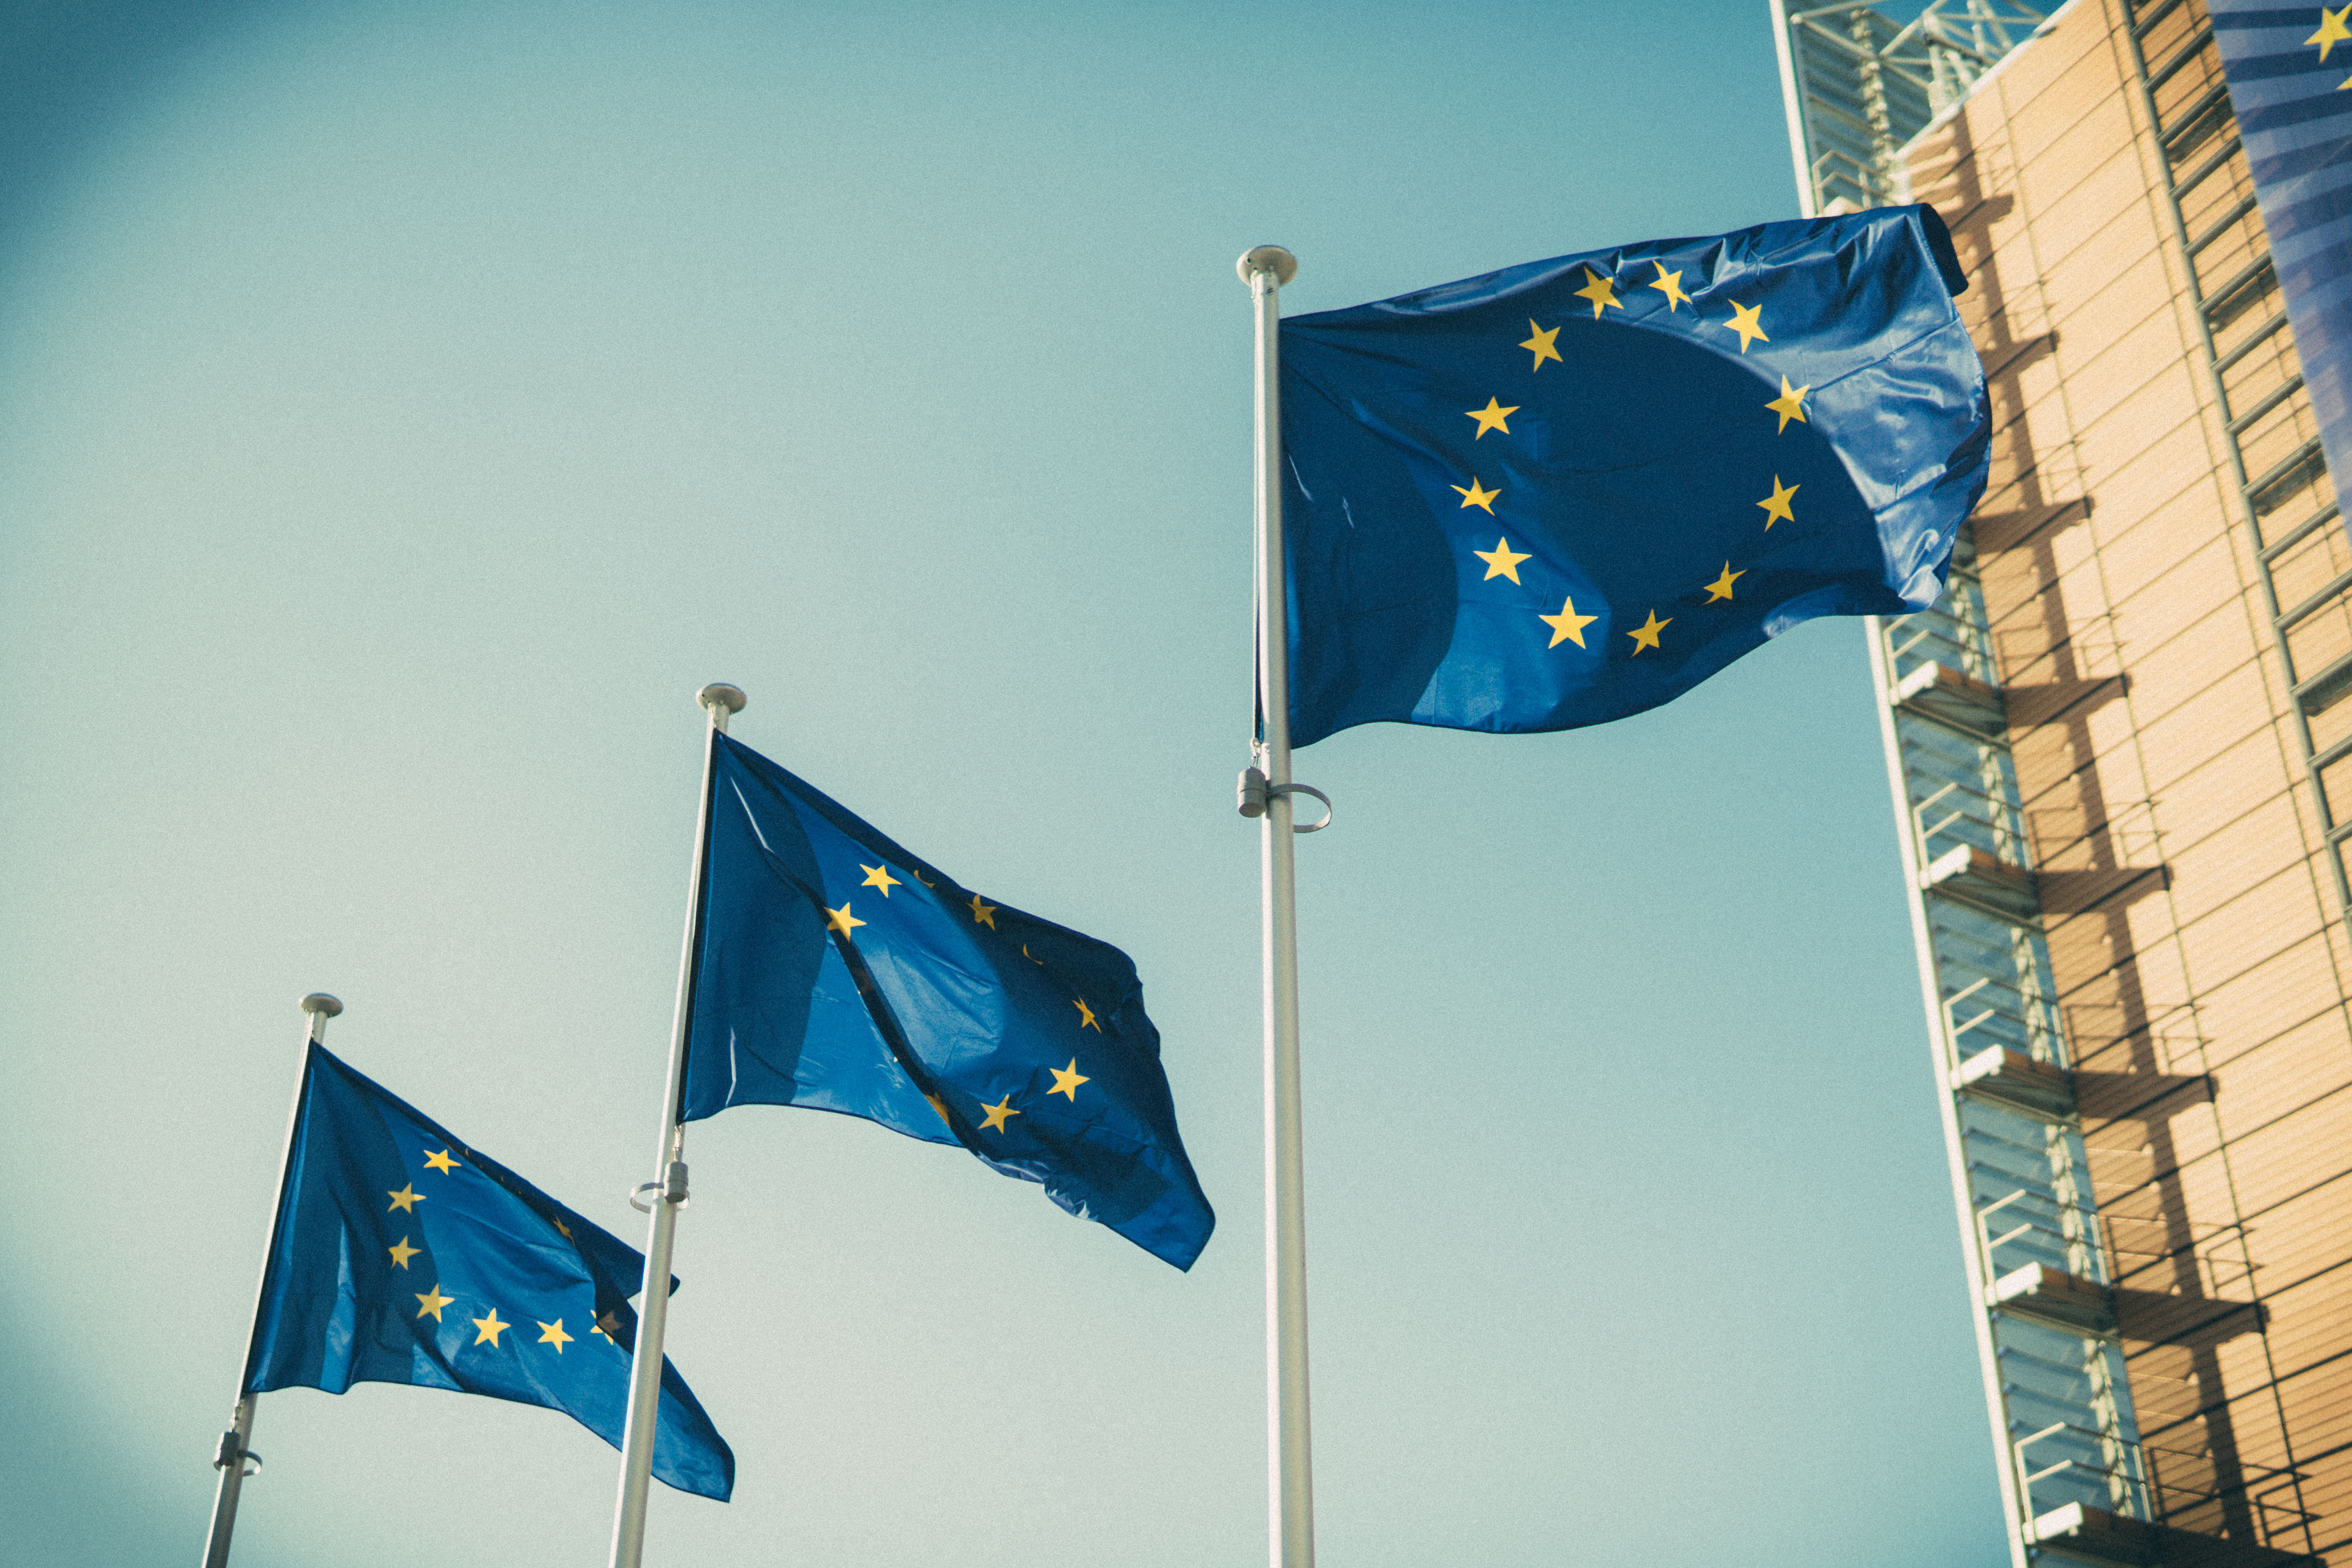 The year 2019 will be a defining year for the EU